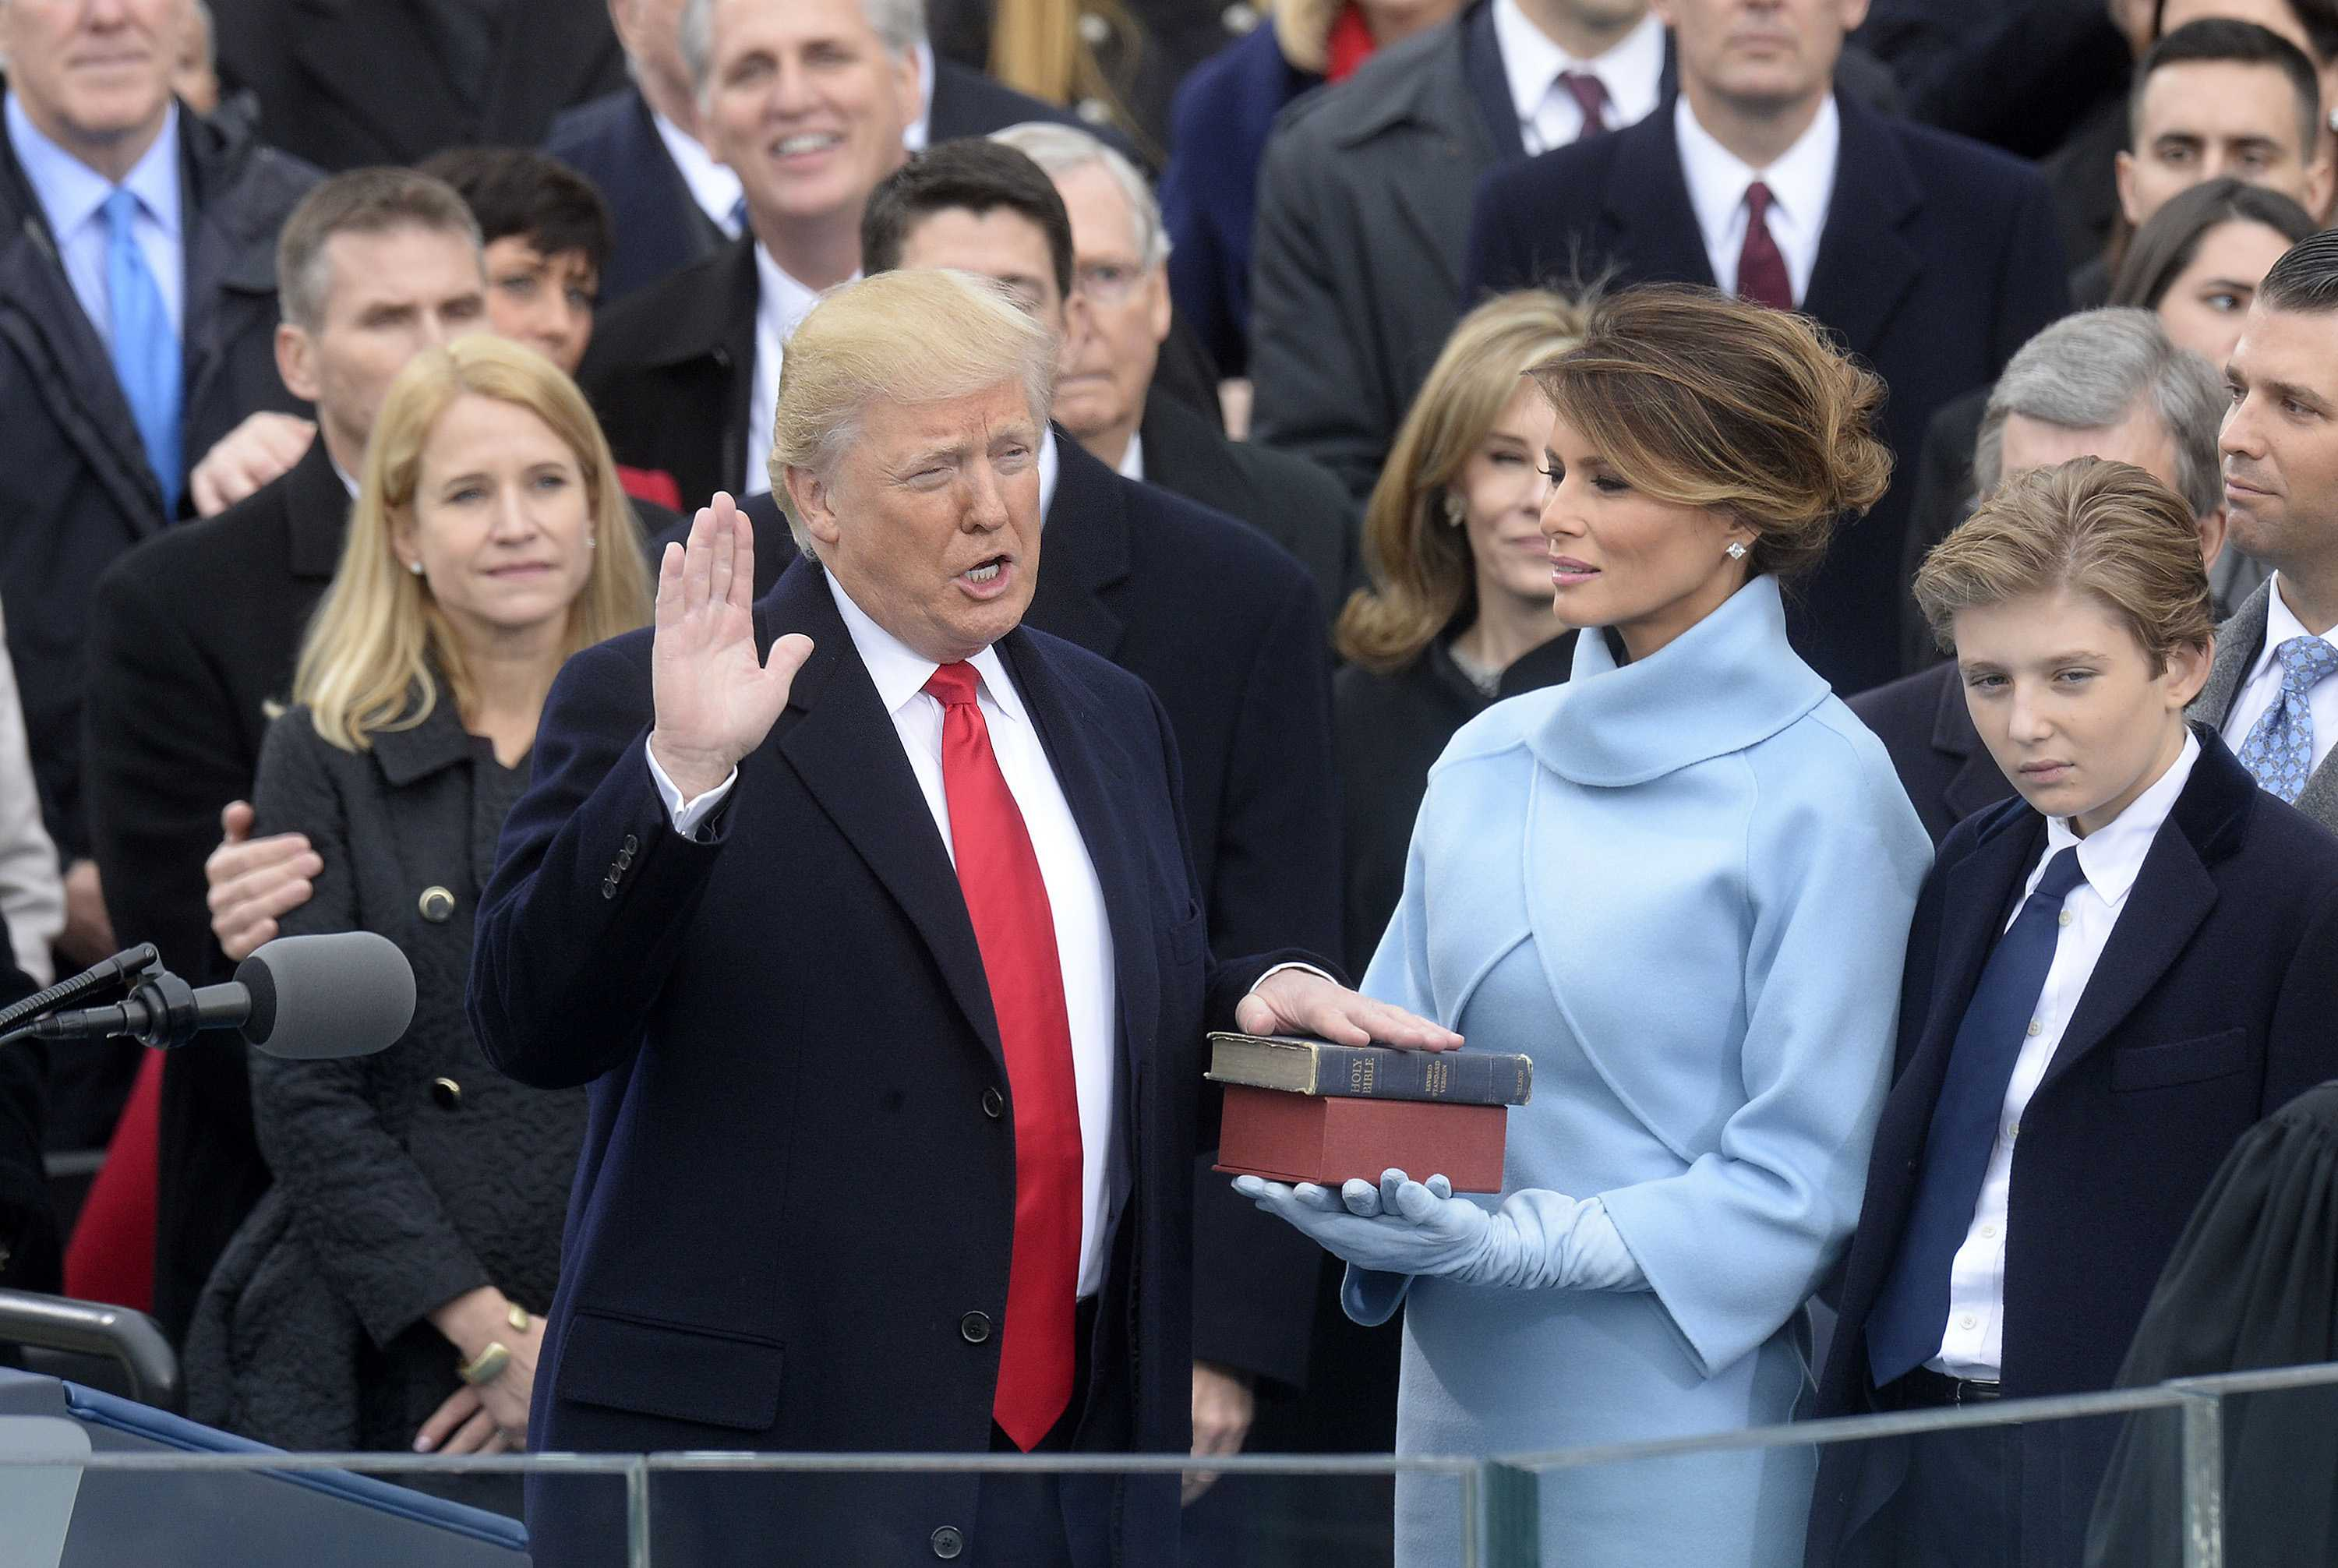 Chief Justice of the United States John G. Roberts, Jr. administers the oath of office to President Donald Trump during the 58th Presidential Inauguration on Jan. 20, 2017 in Washington, D.C. (Olivier Douliery/Abaca Press/TNS)